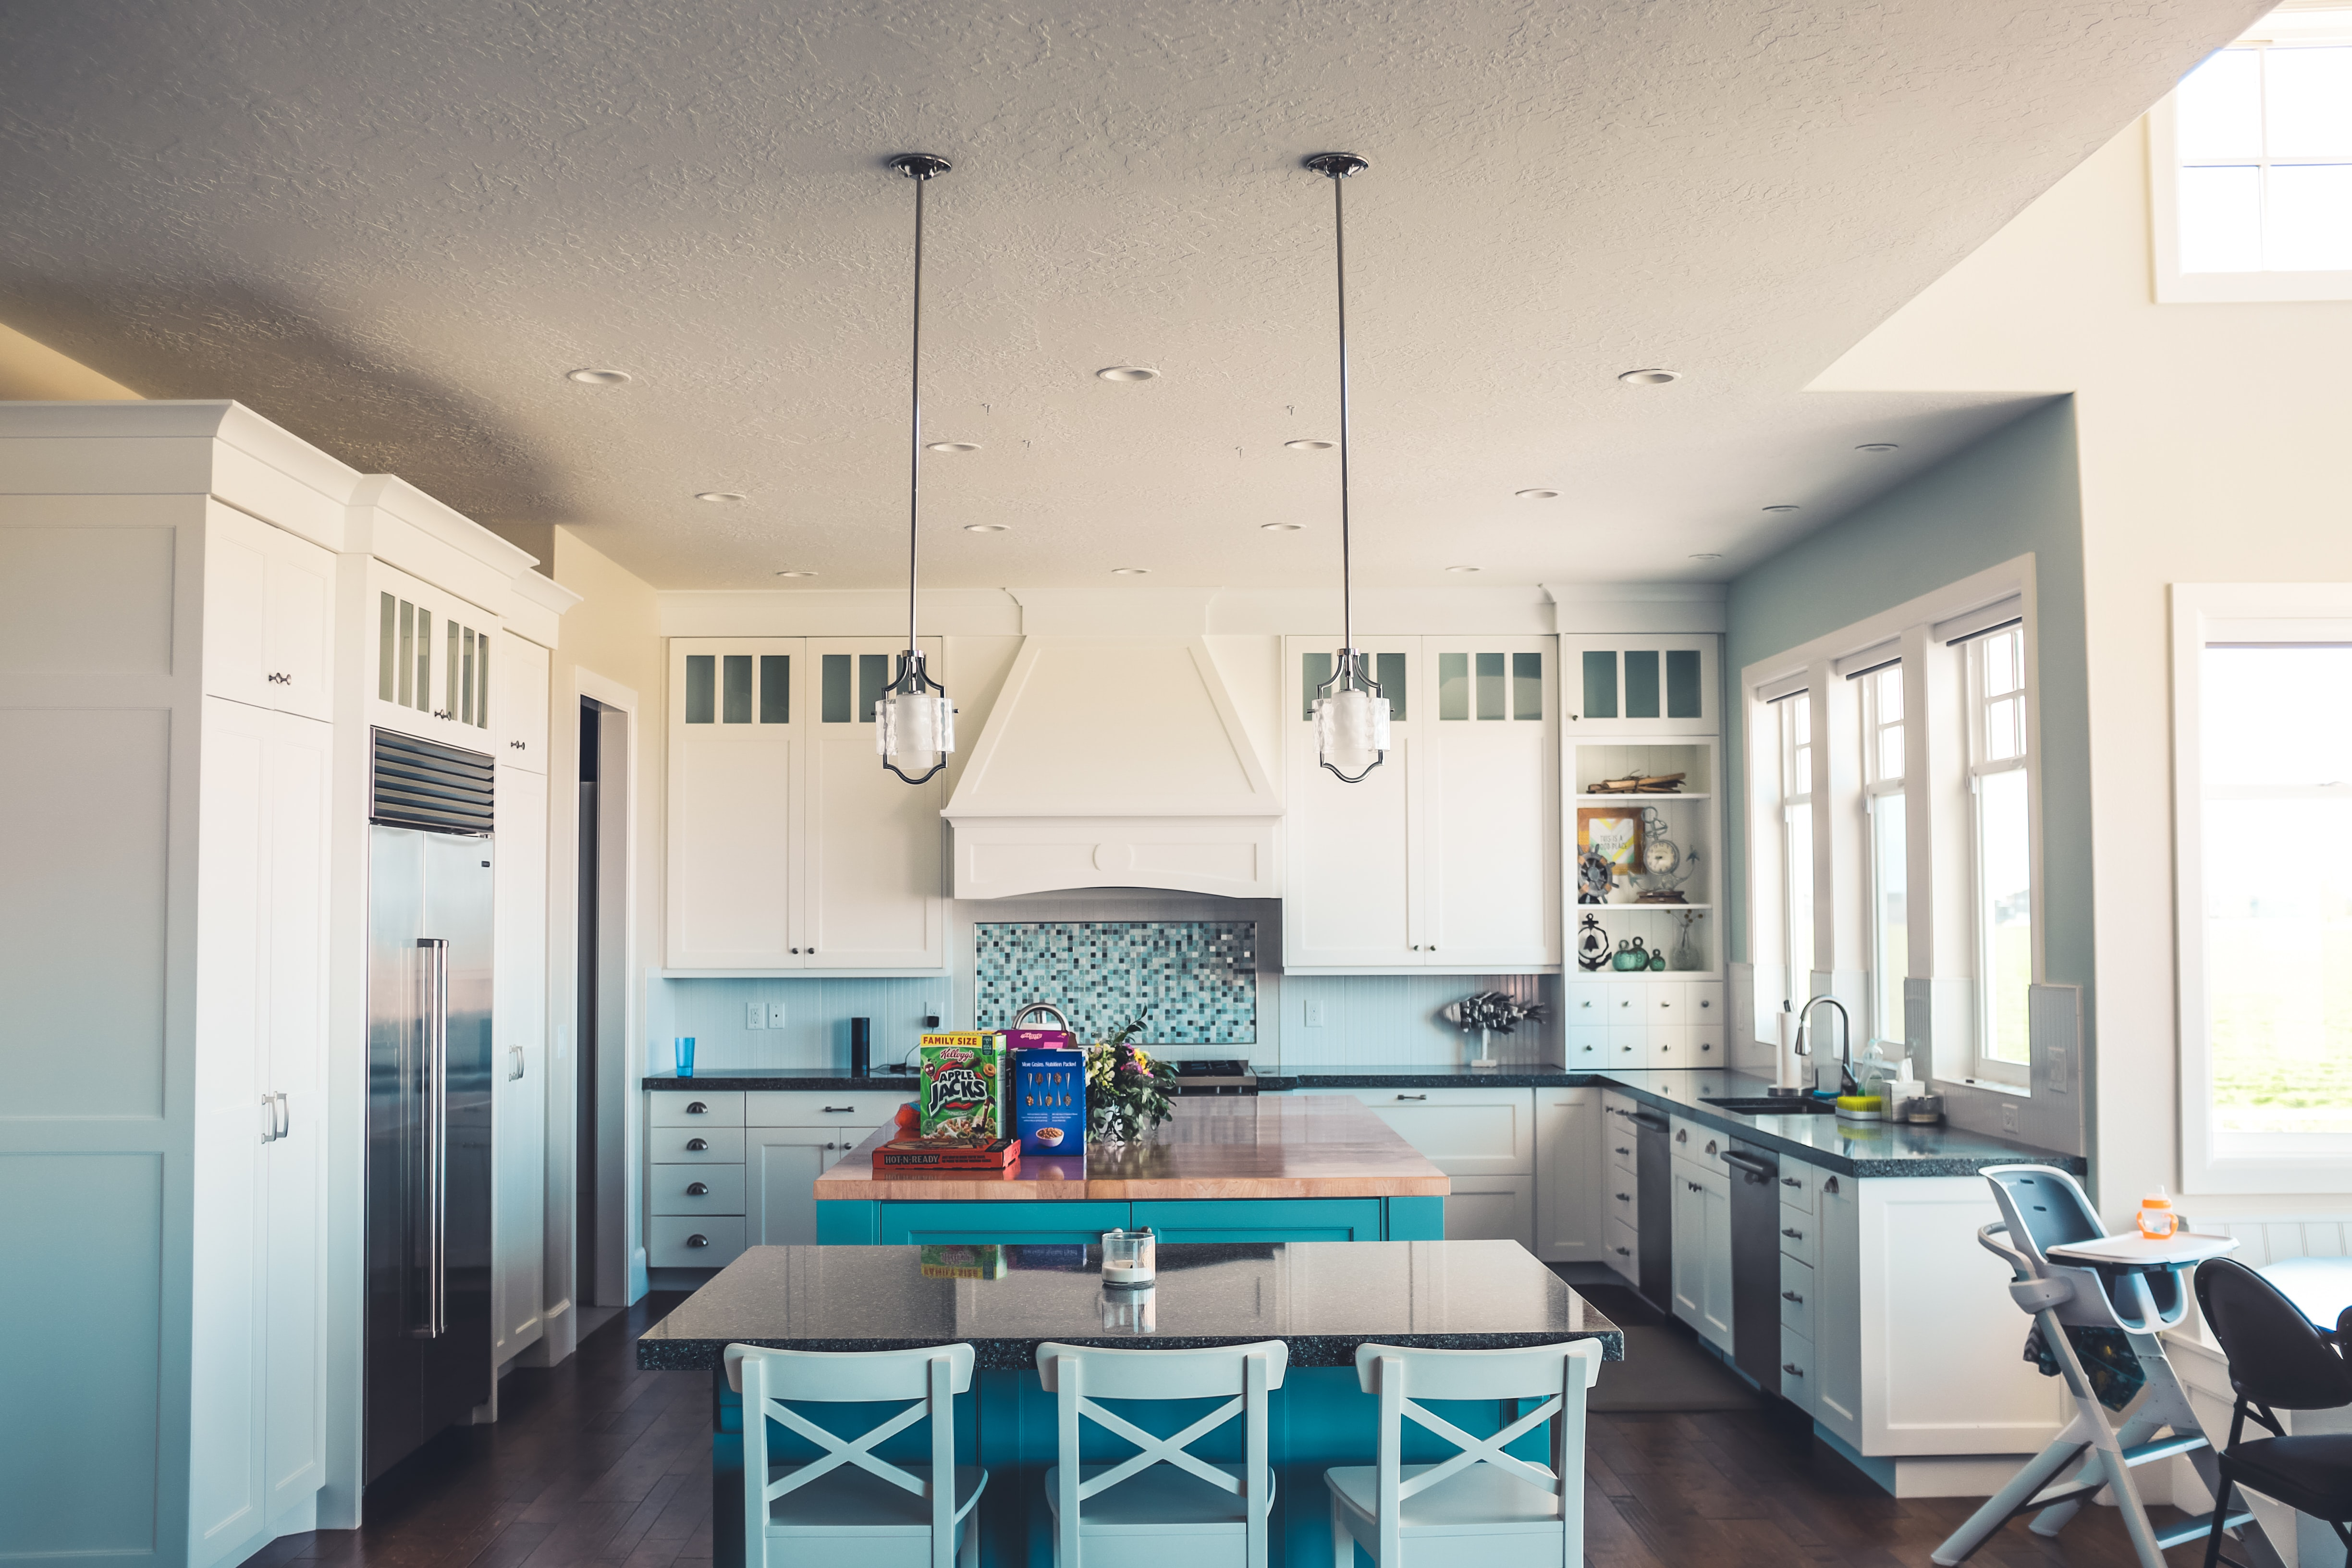 Blue And White Kitchen Interior With Open Concept With Island And Large  Windows